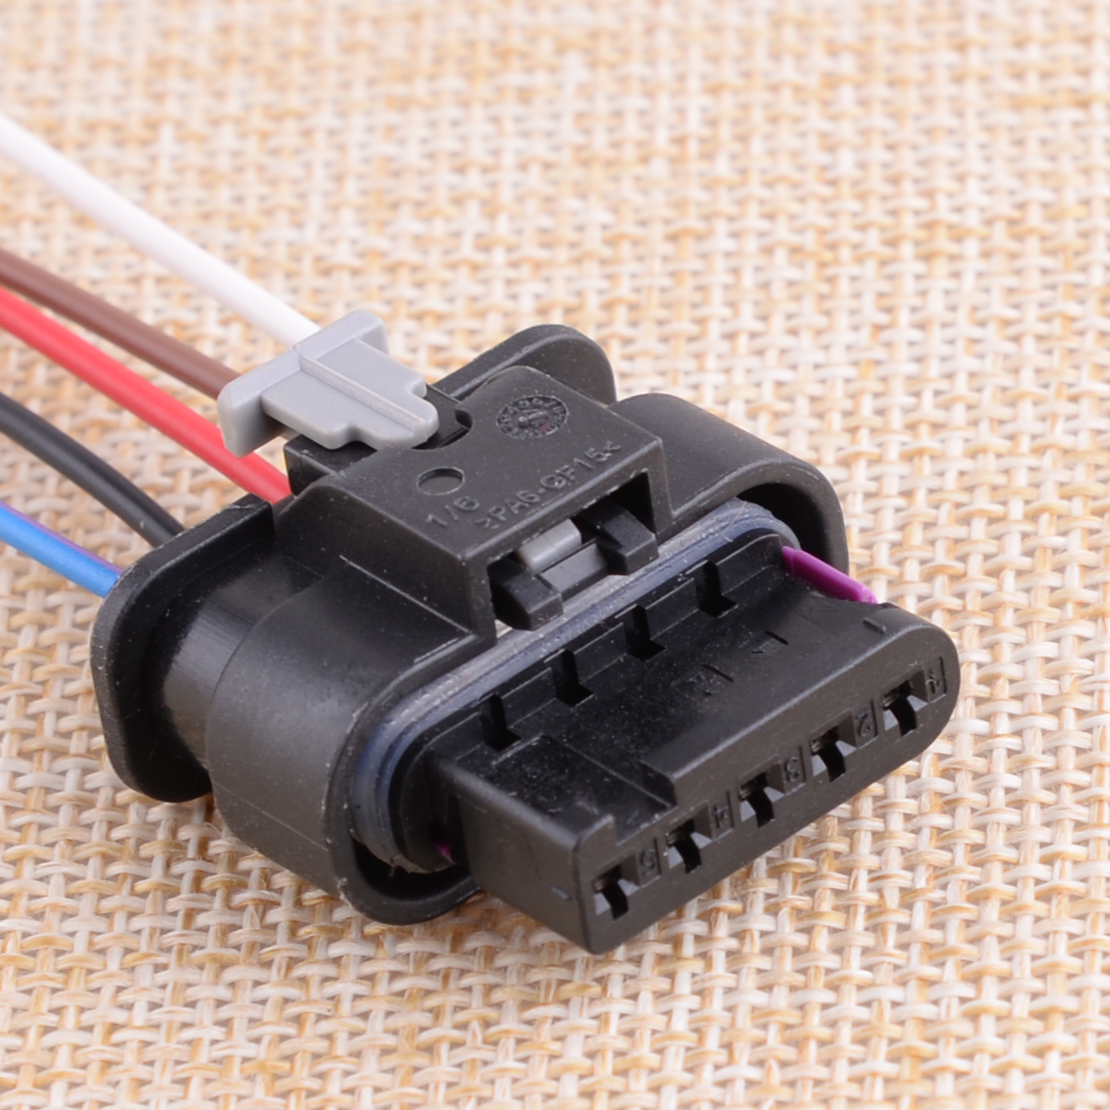 Mass Air Flow Sensor Cost >> 5pin Air Flow Sensor MAF Harness Pigtail Connector Cable ...